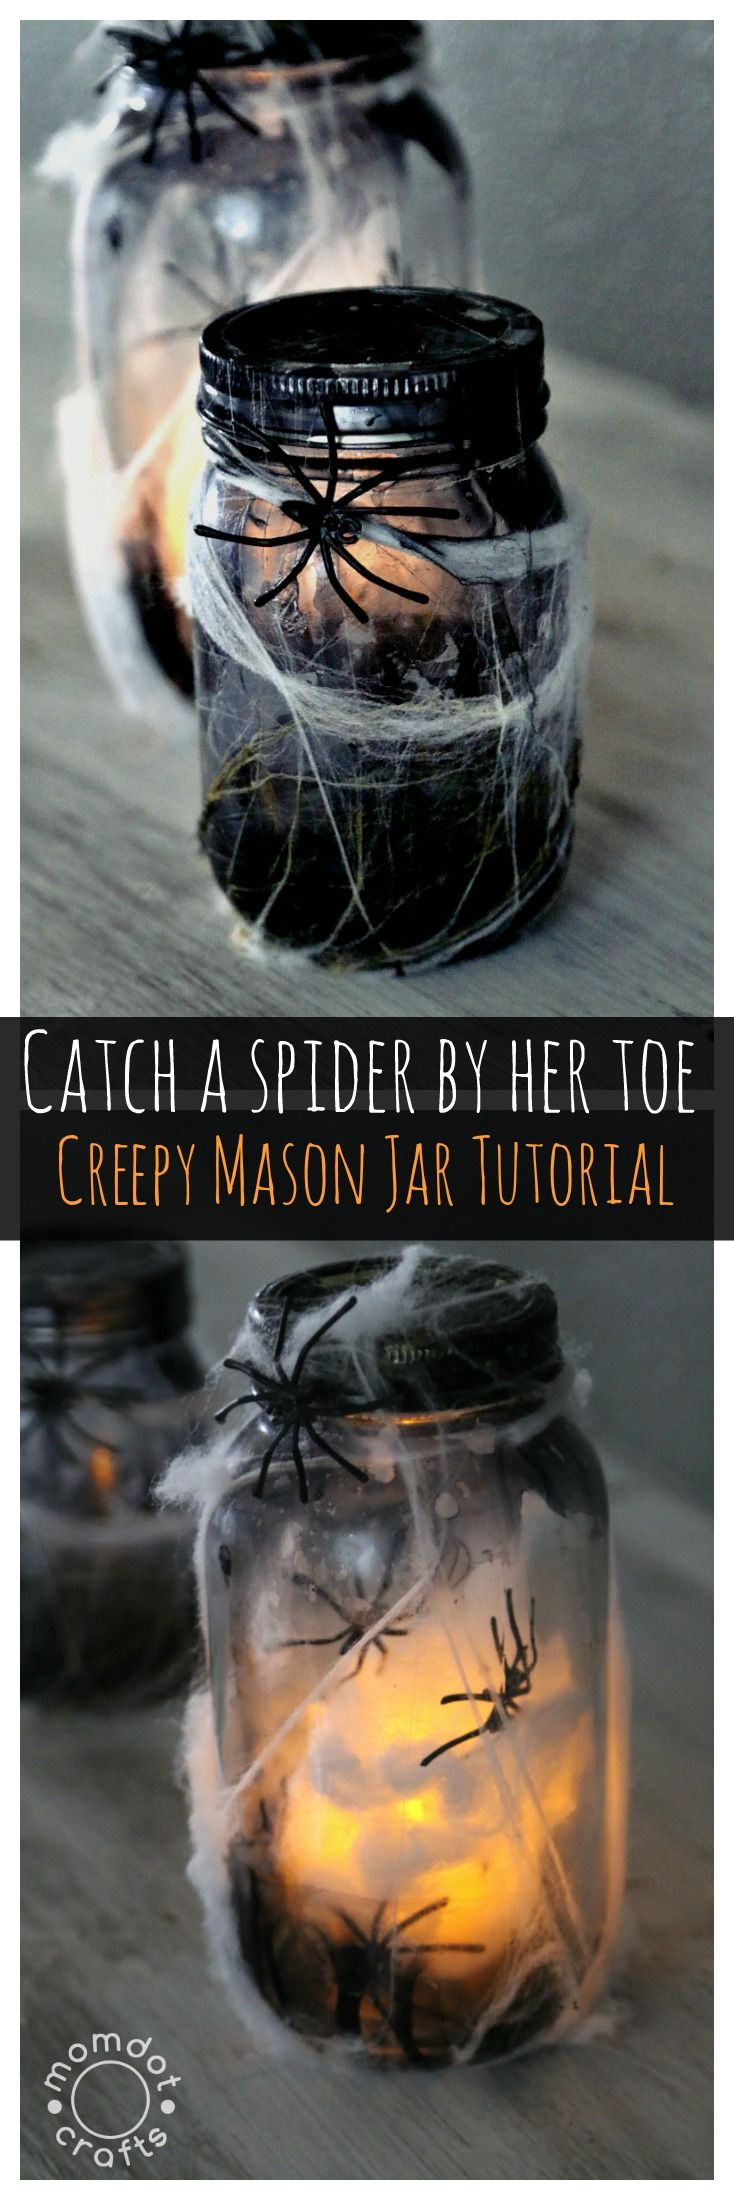 Pinterest Halloween Decoration Ideas -  catch a spider by its toe light up mason jar